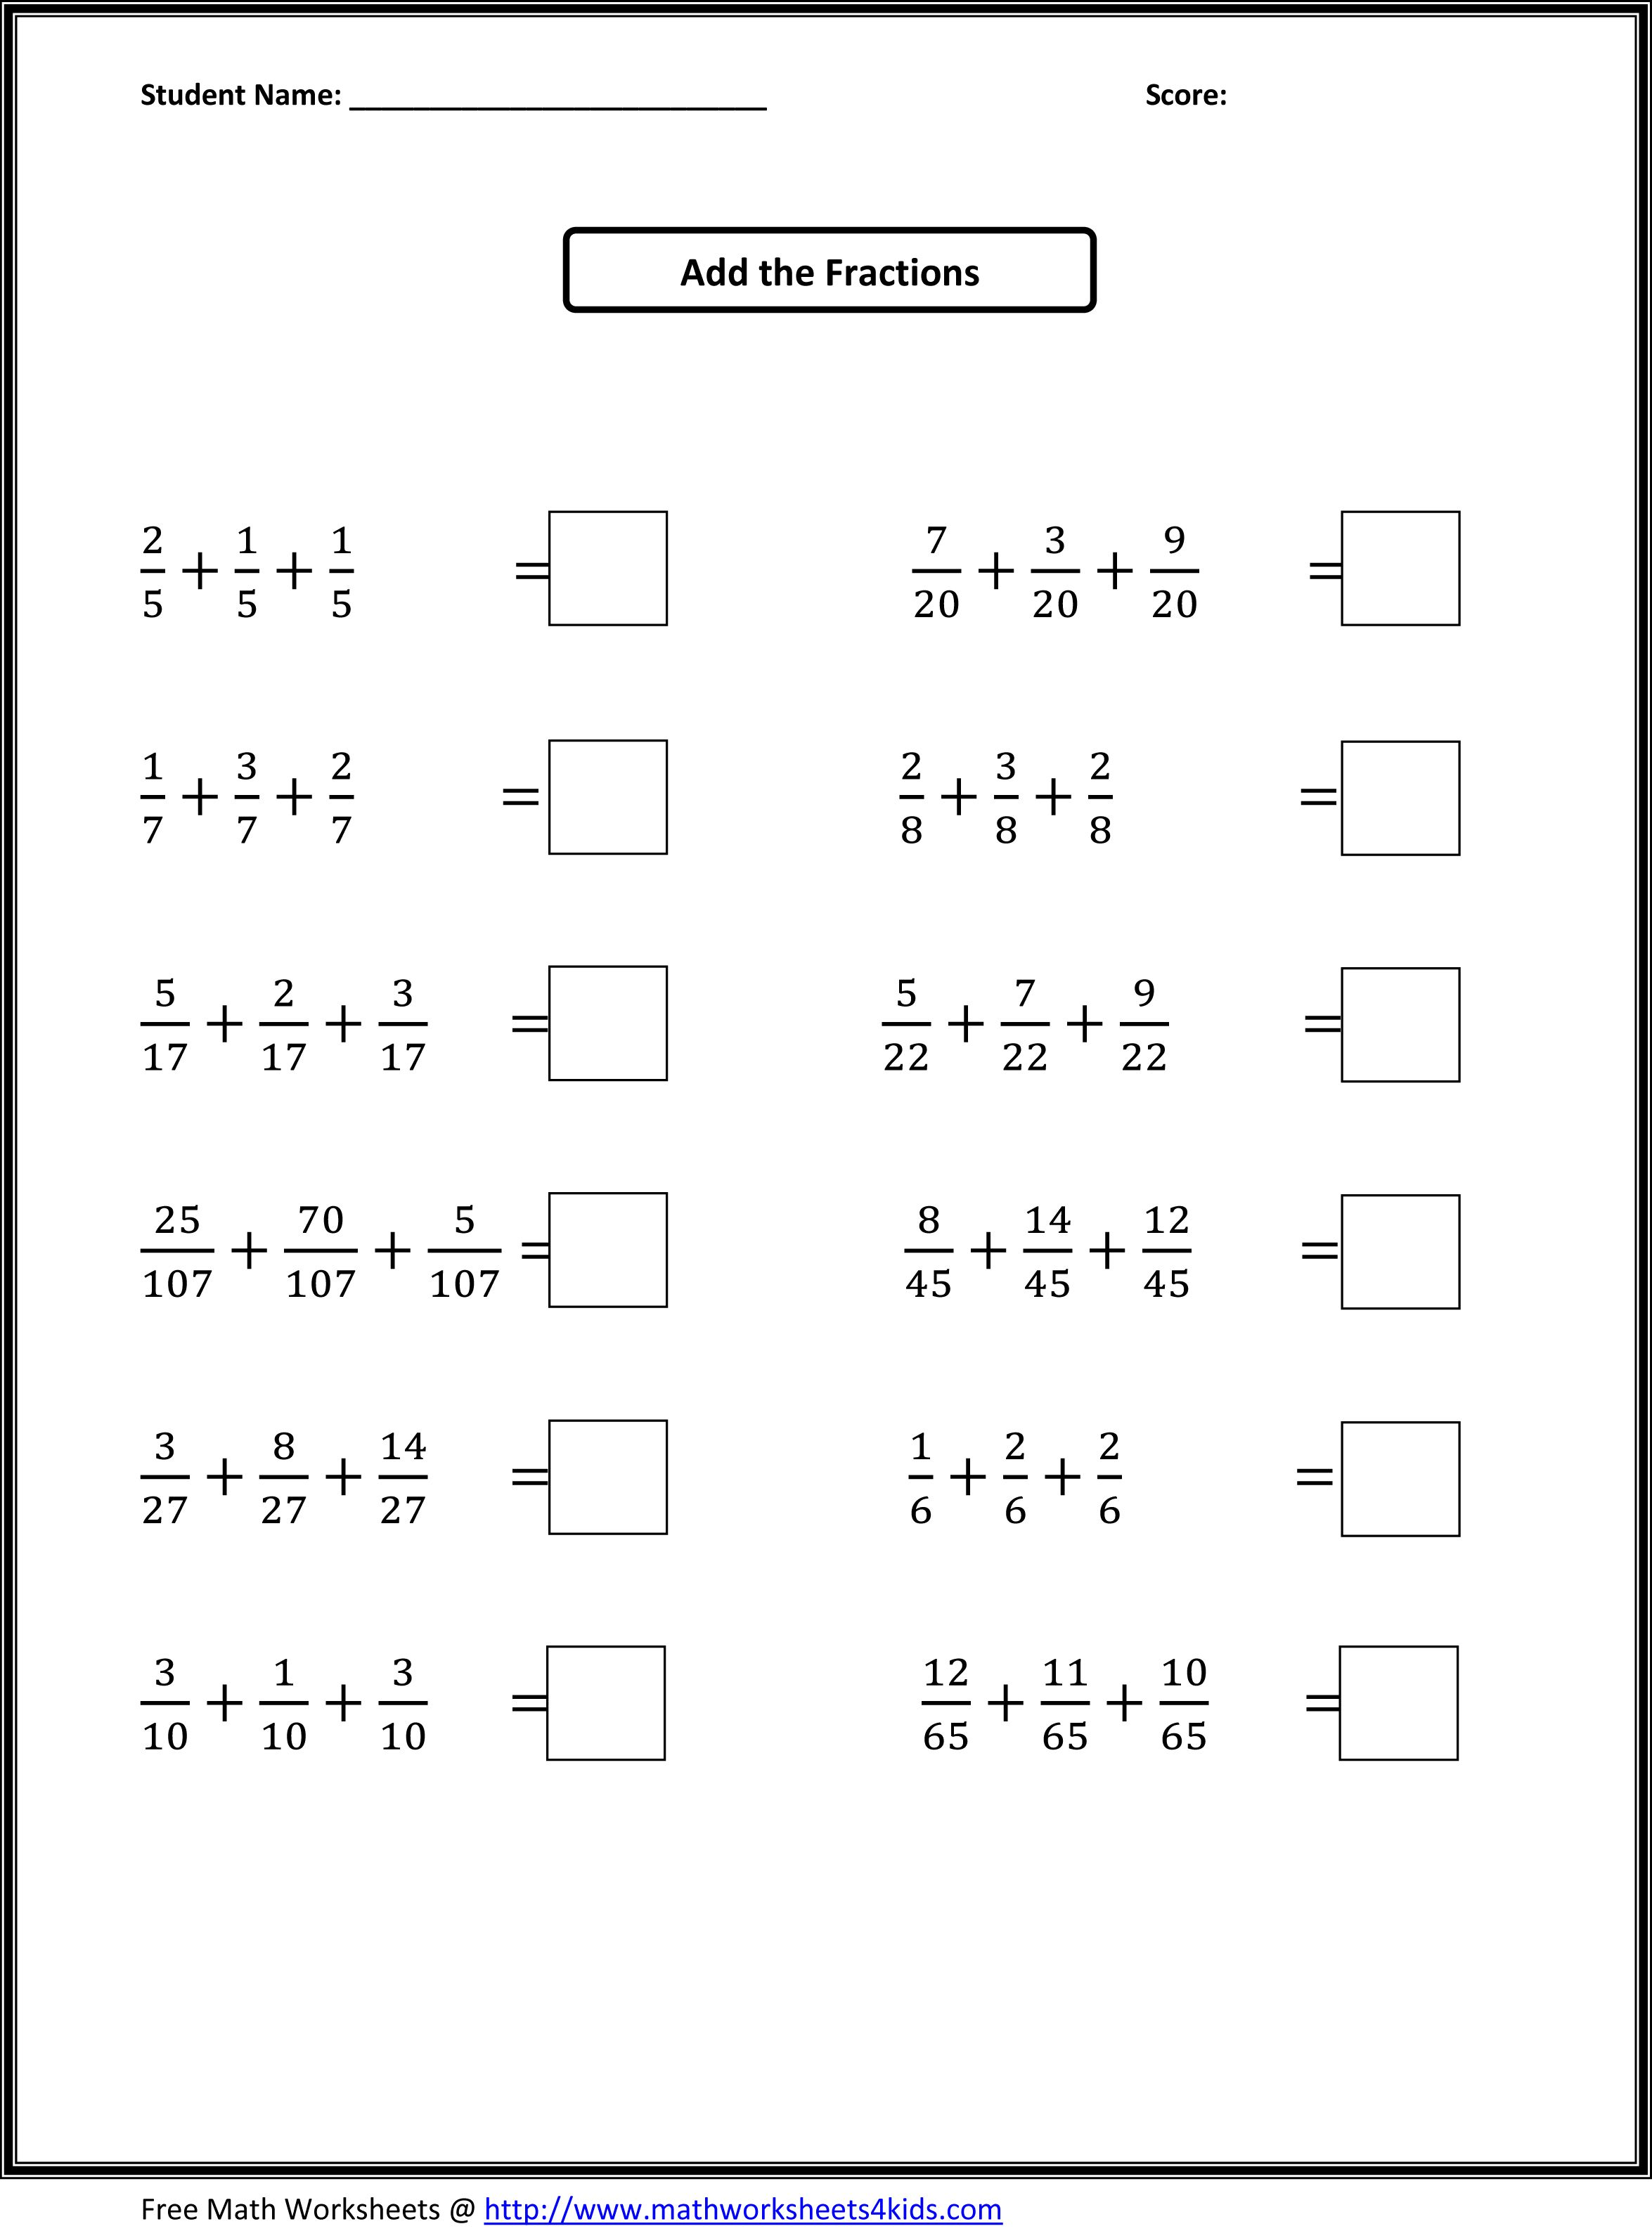 Worksheets 5th Grade Math Worksheets Fractions printable worksheets by grade level and skill teaching ideas fourth math worksheets